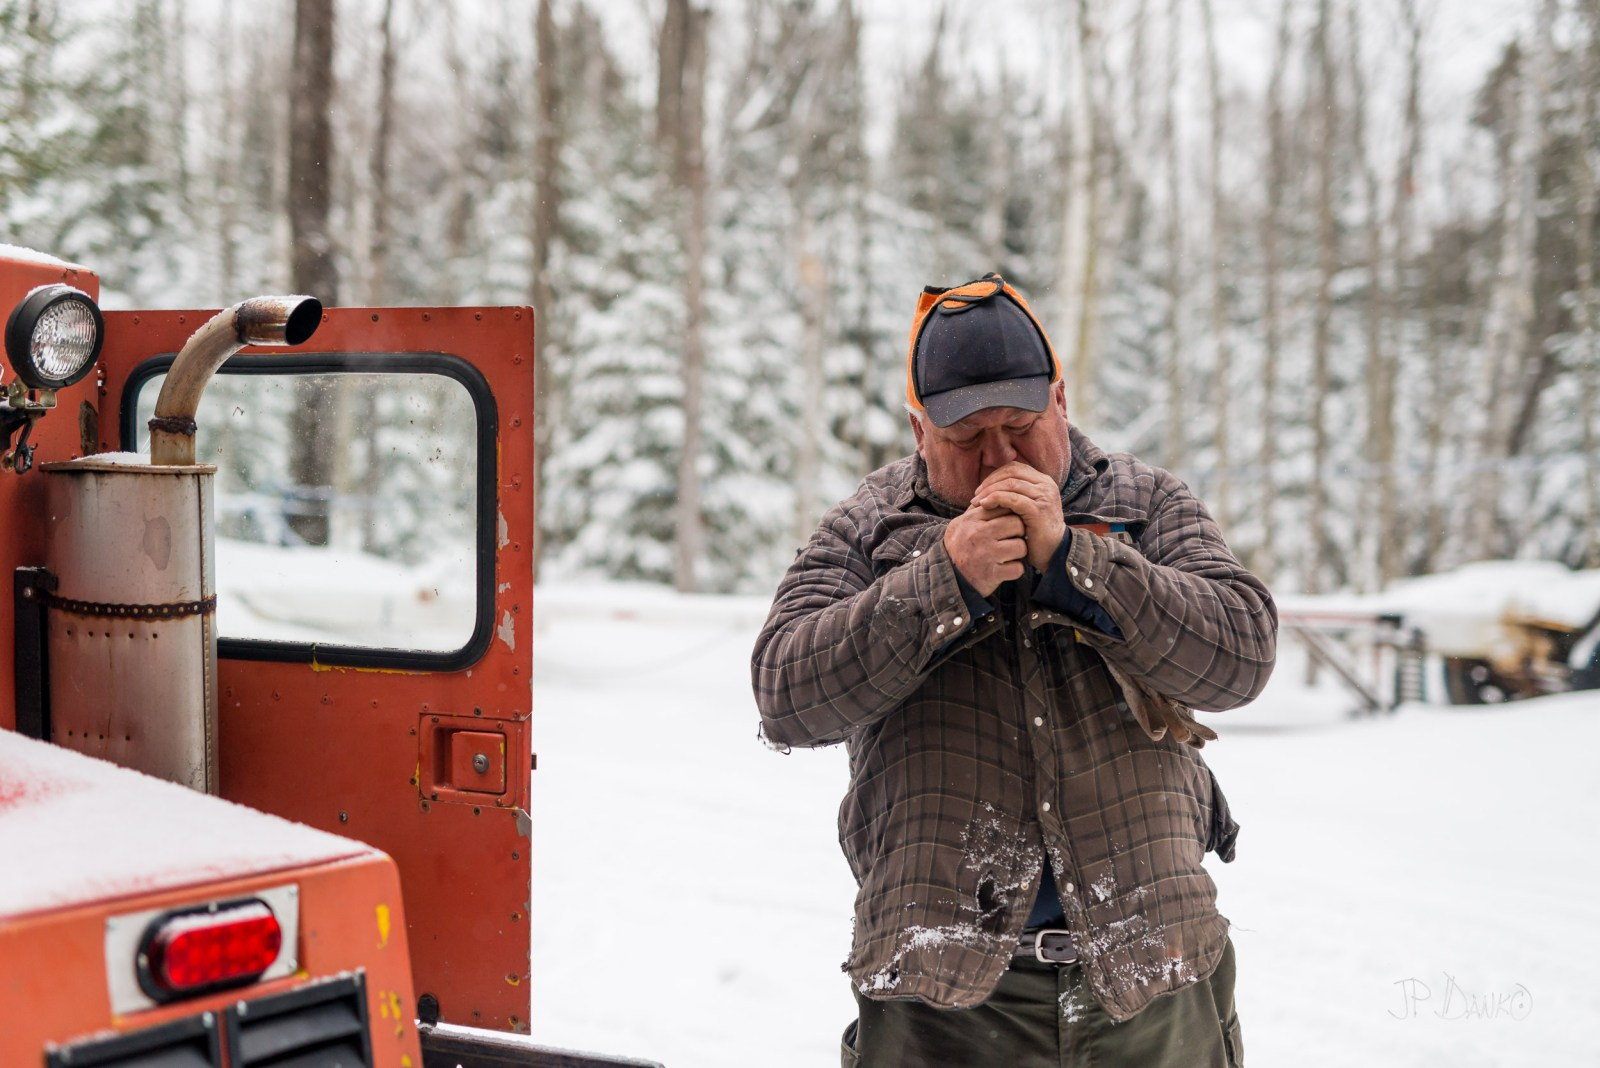 Rustic northern Ontario man leaves cab of snow grooming machine to light a cigarette